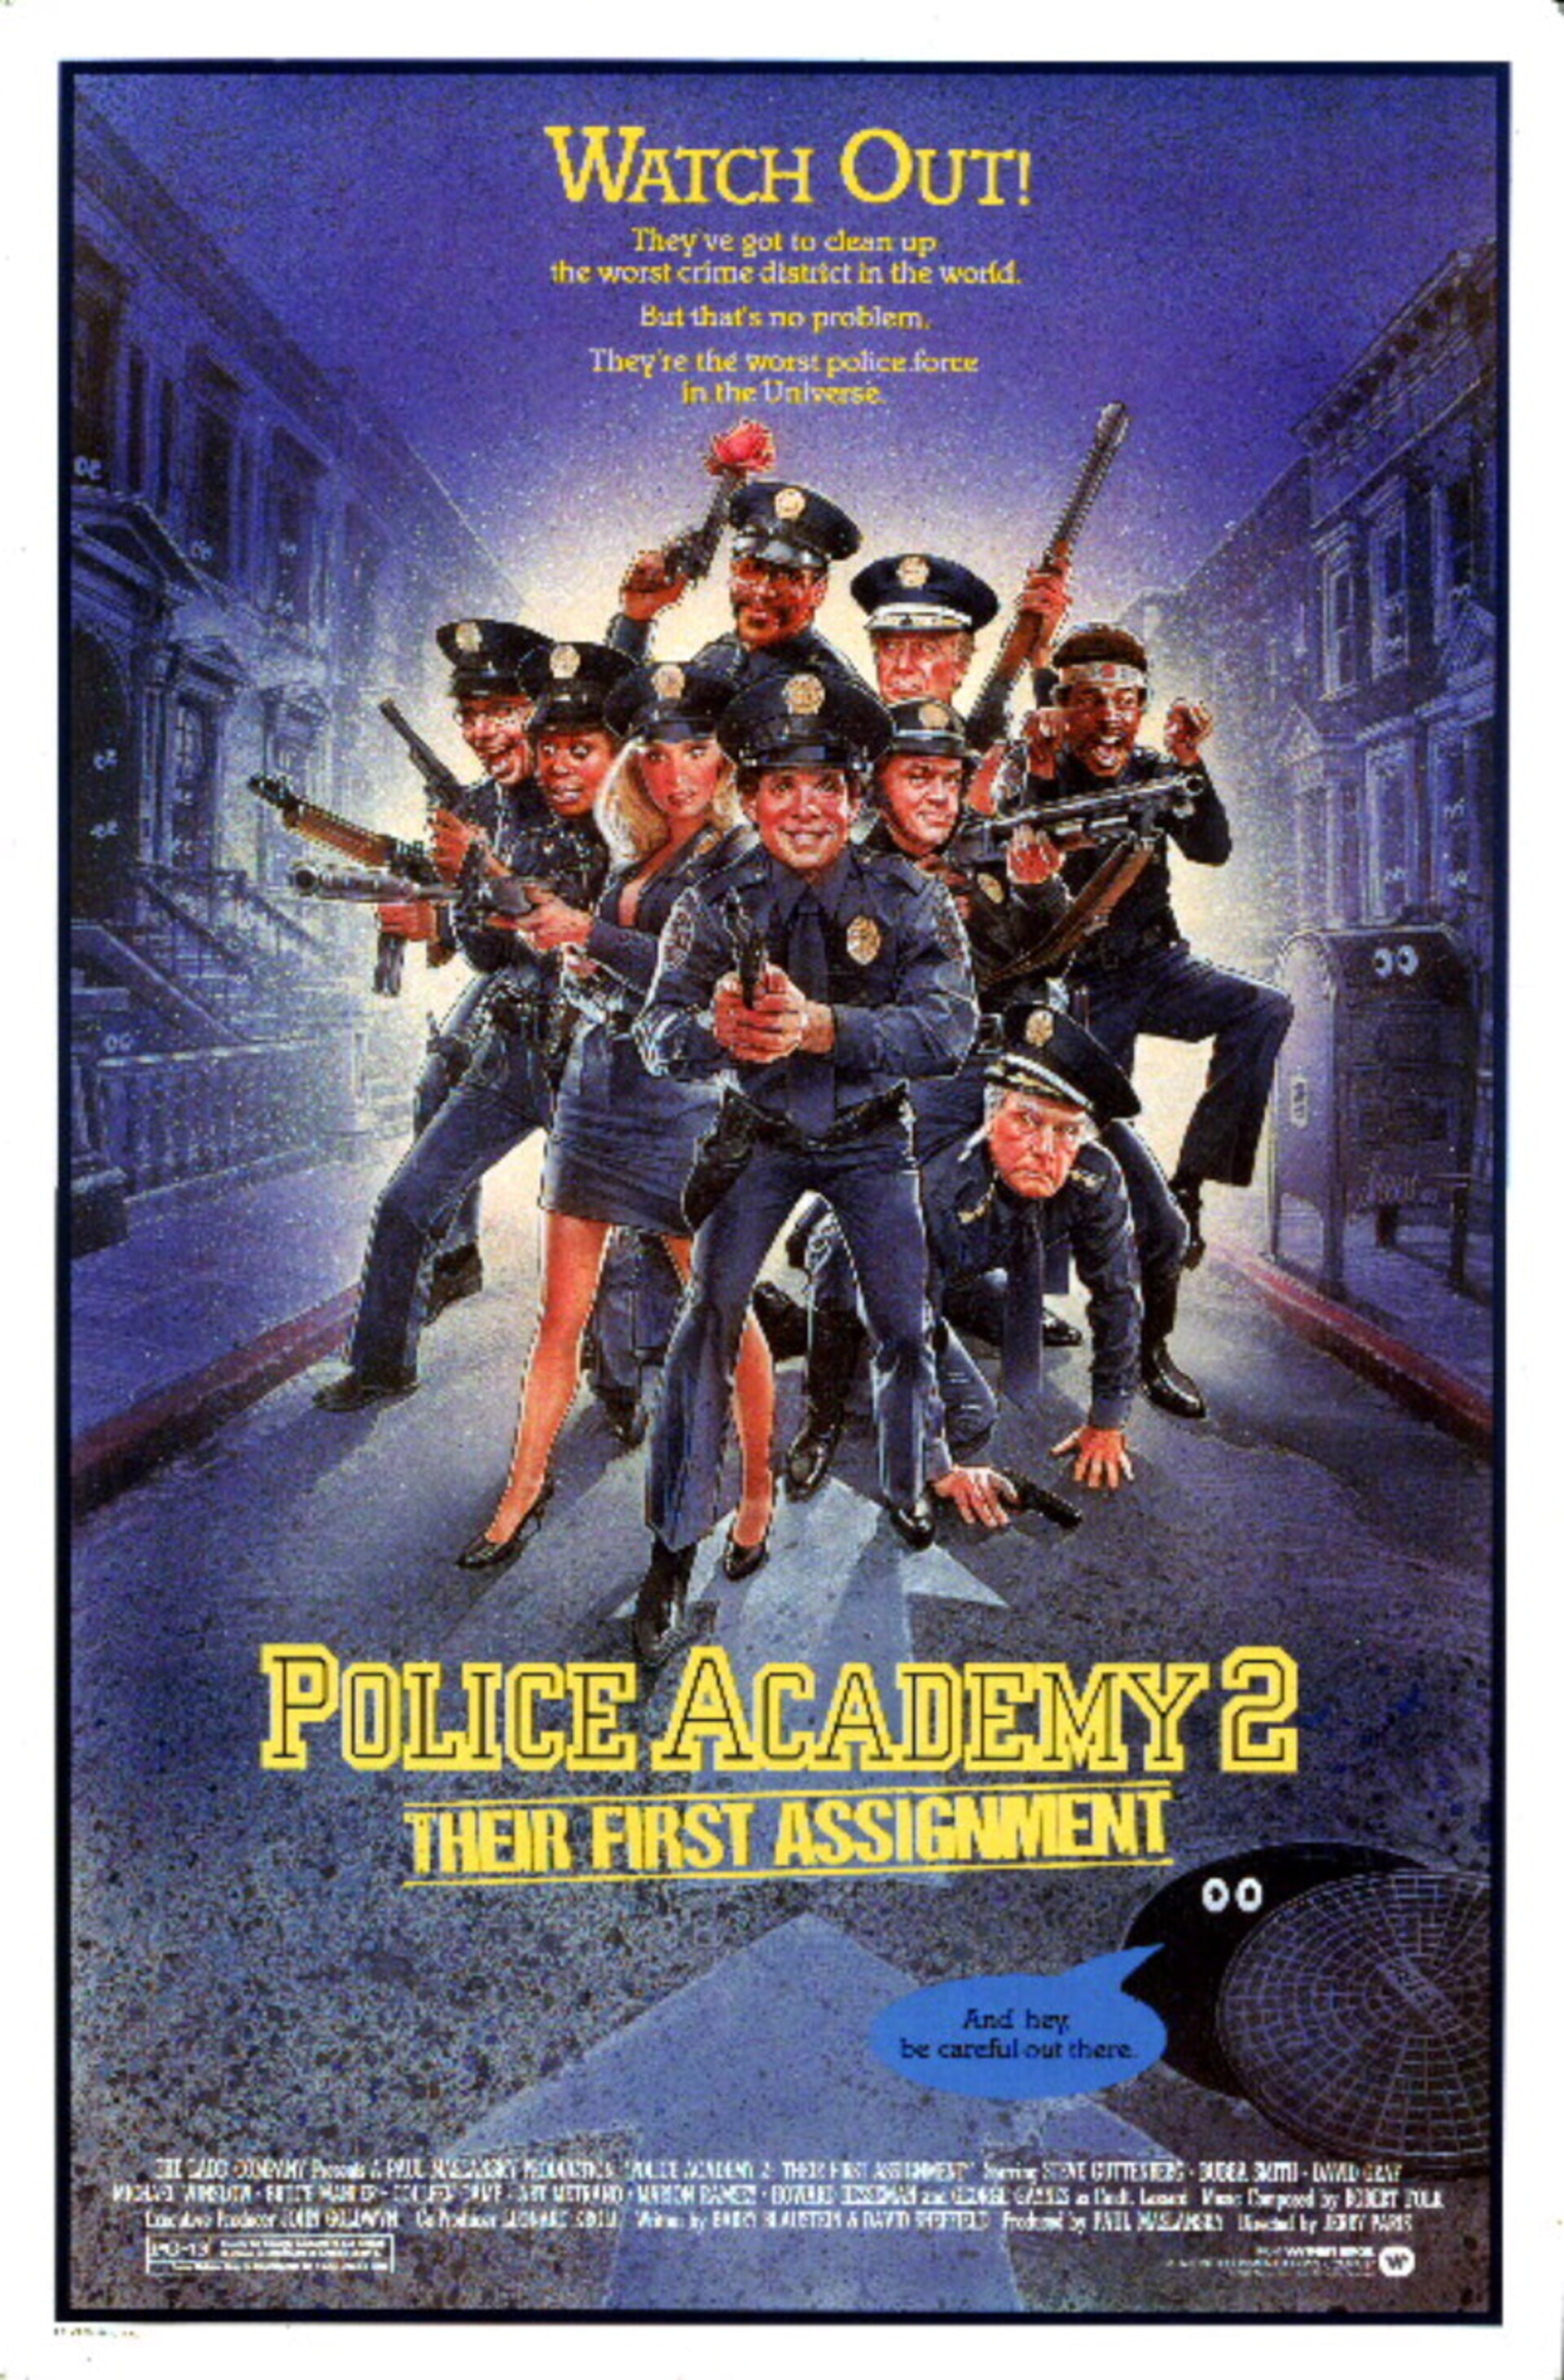 Police Academy 2: Their First Assignment - Poster 1